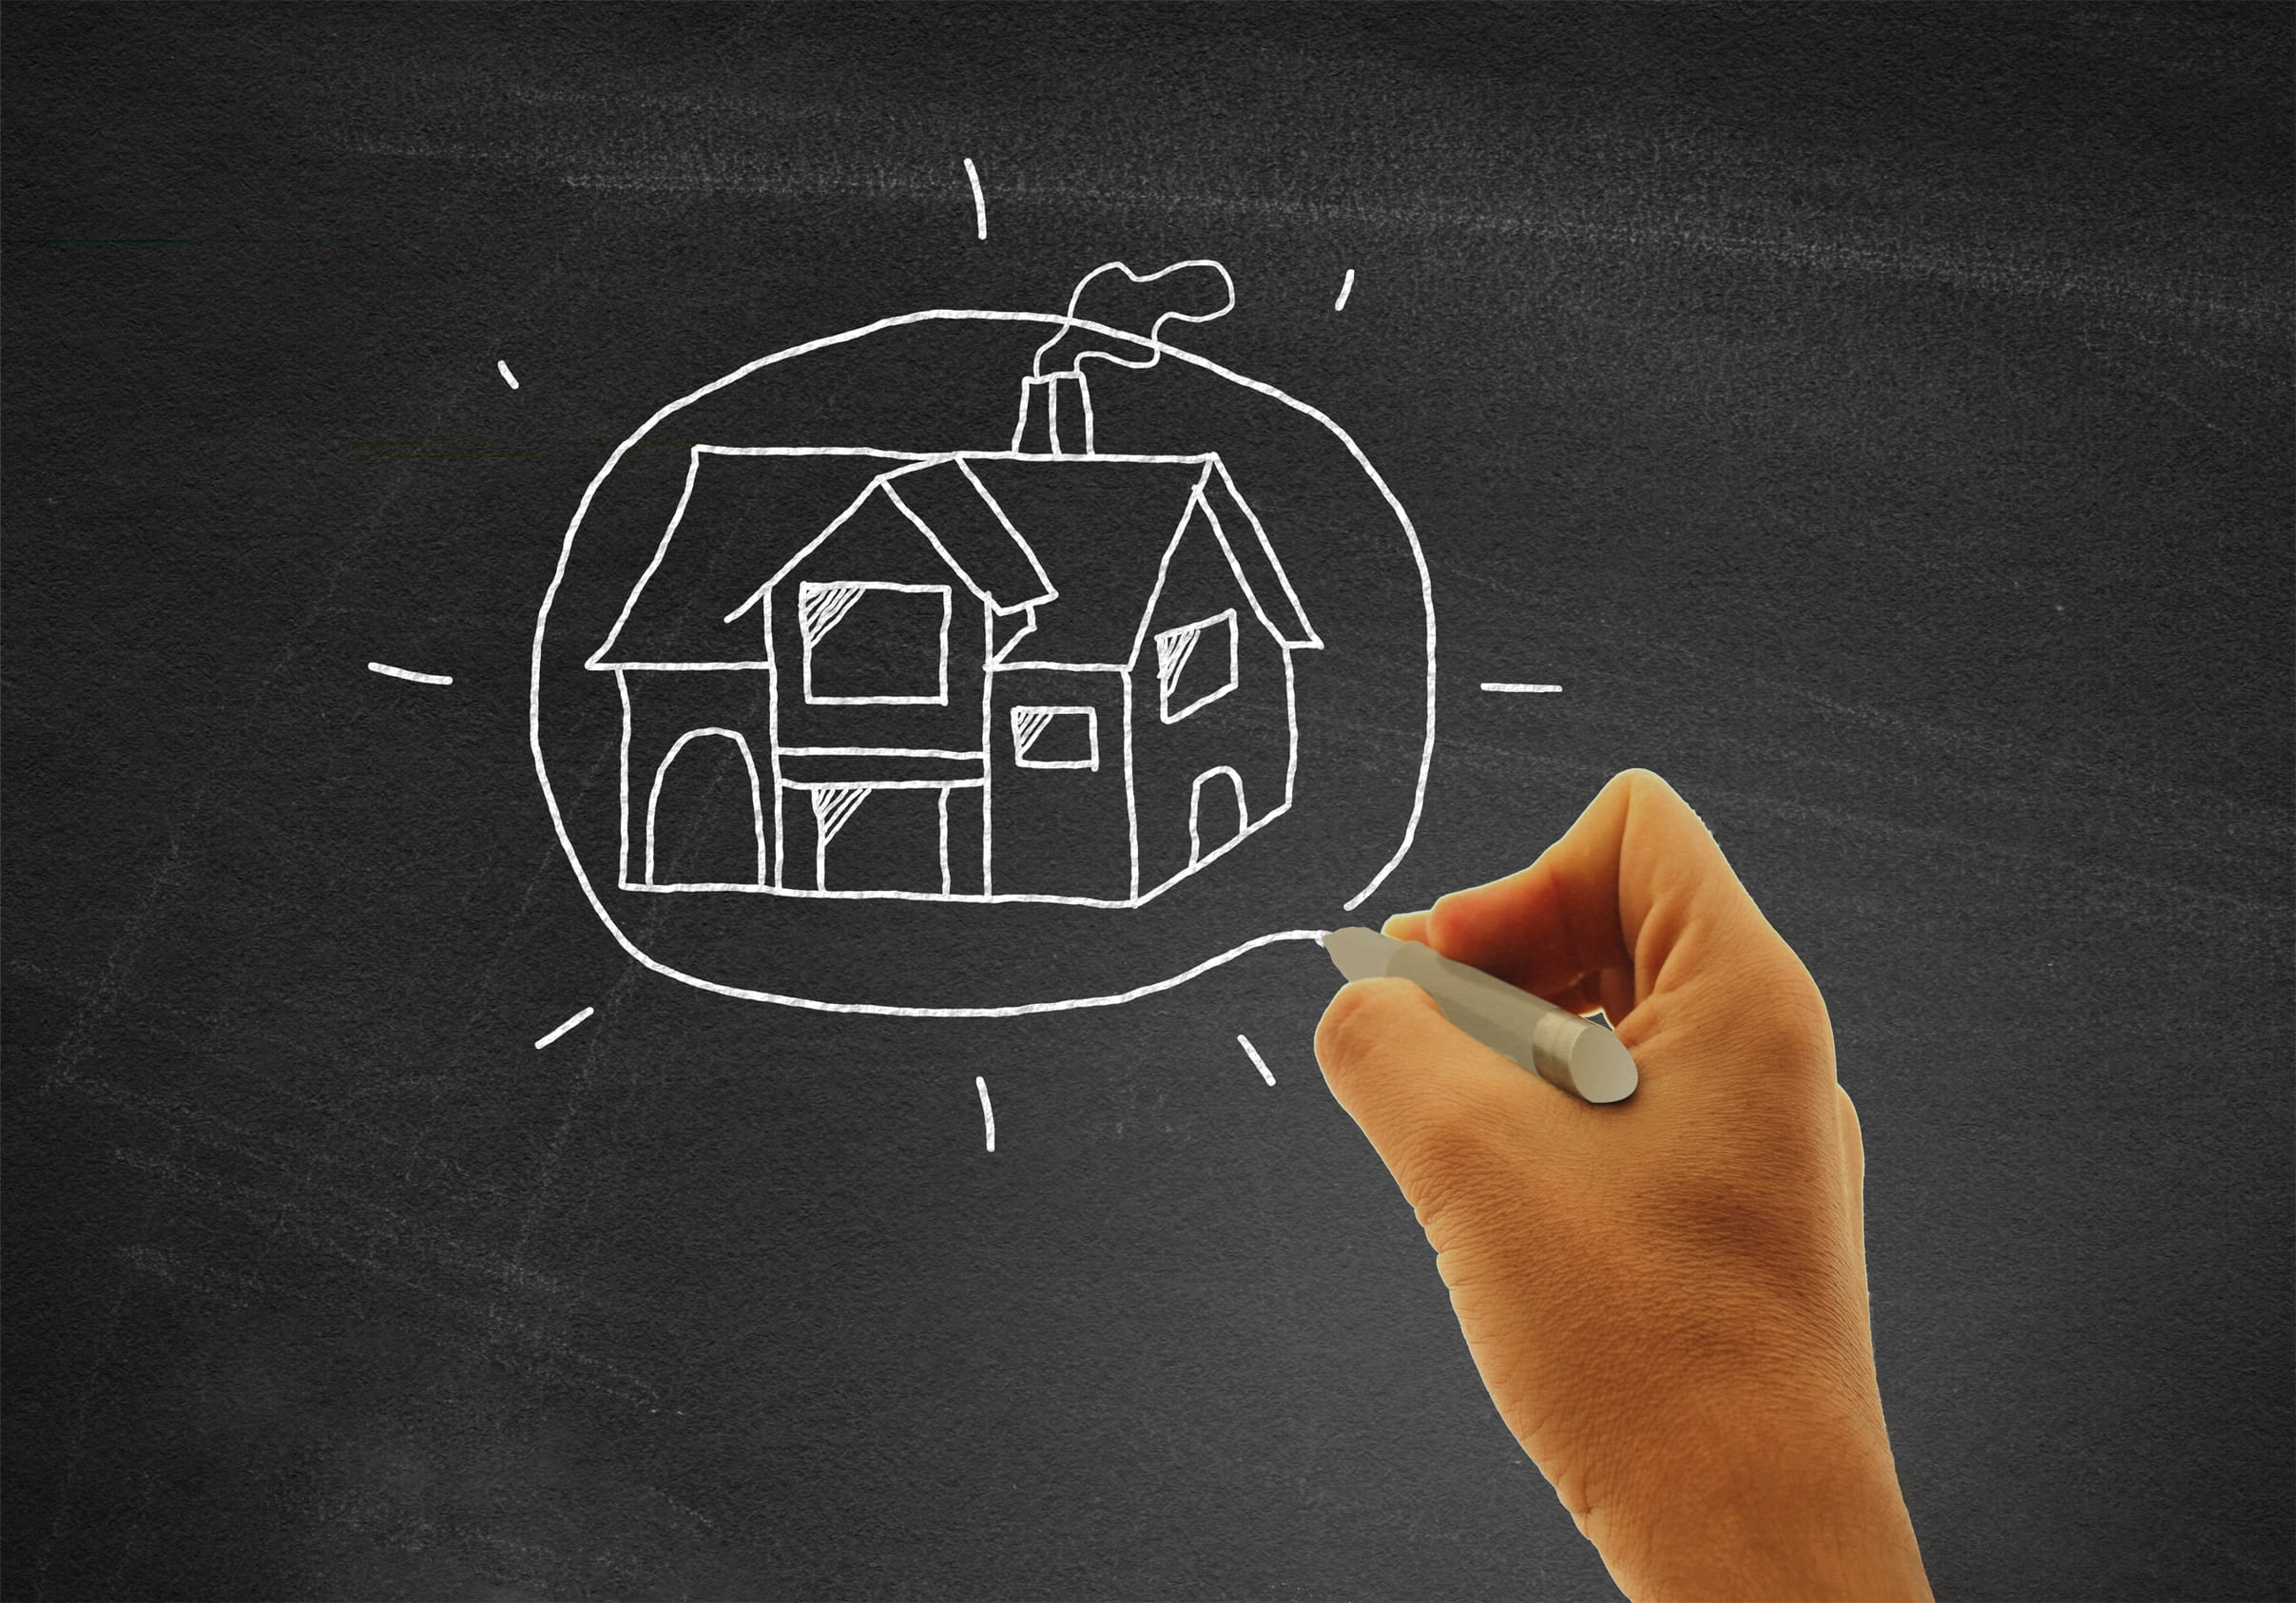 Hand drawing a house on blackboard - Real estate and housing con